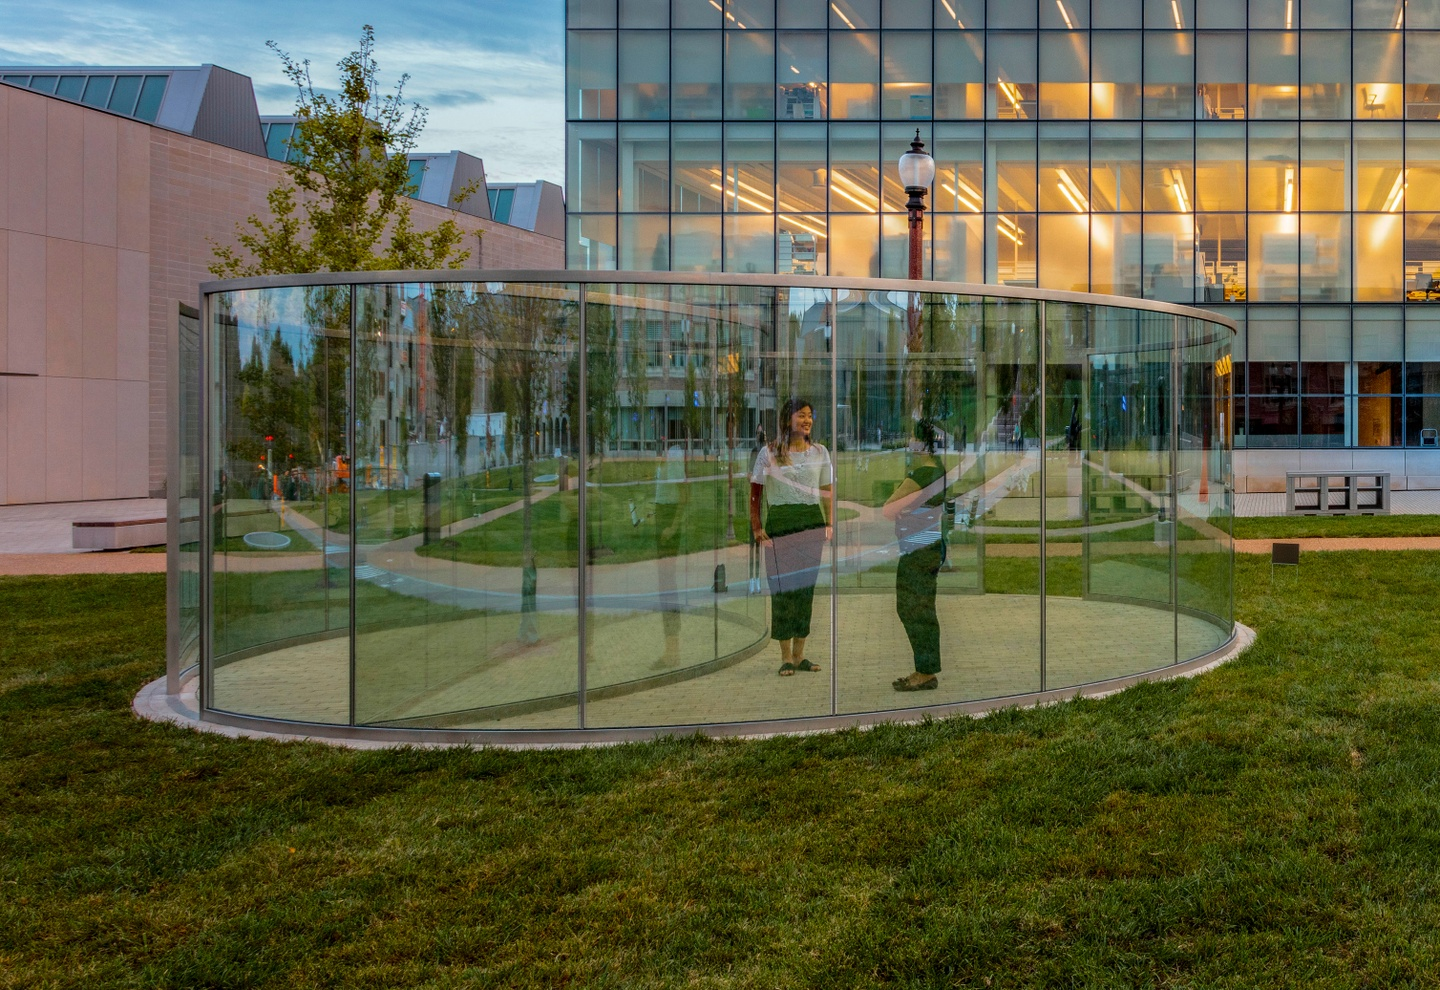 Two people stand inside a transparent pavilion